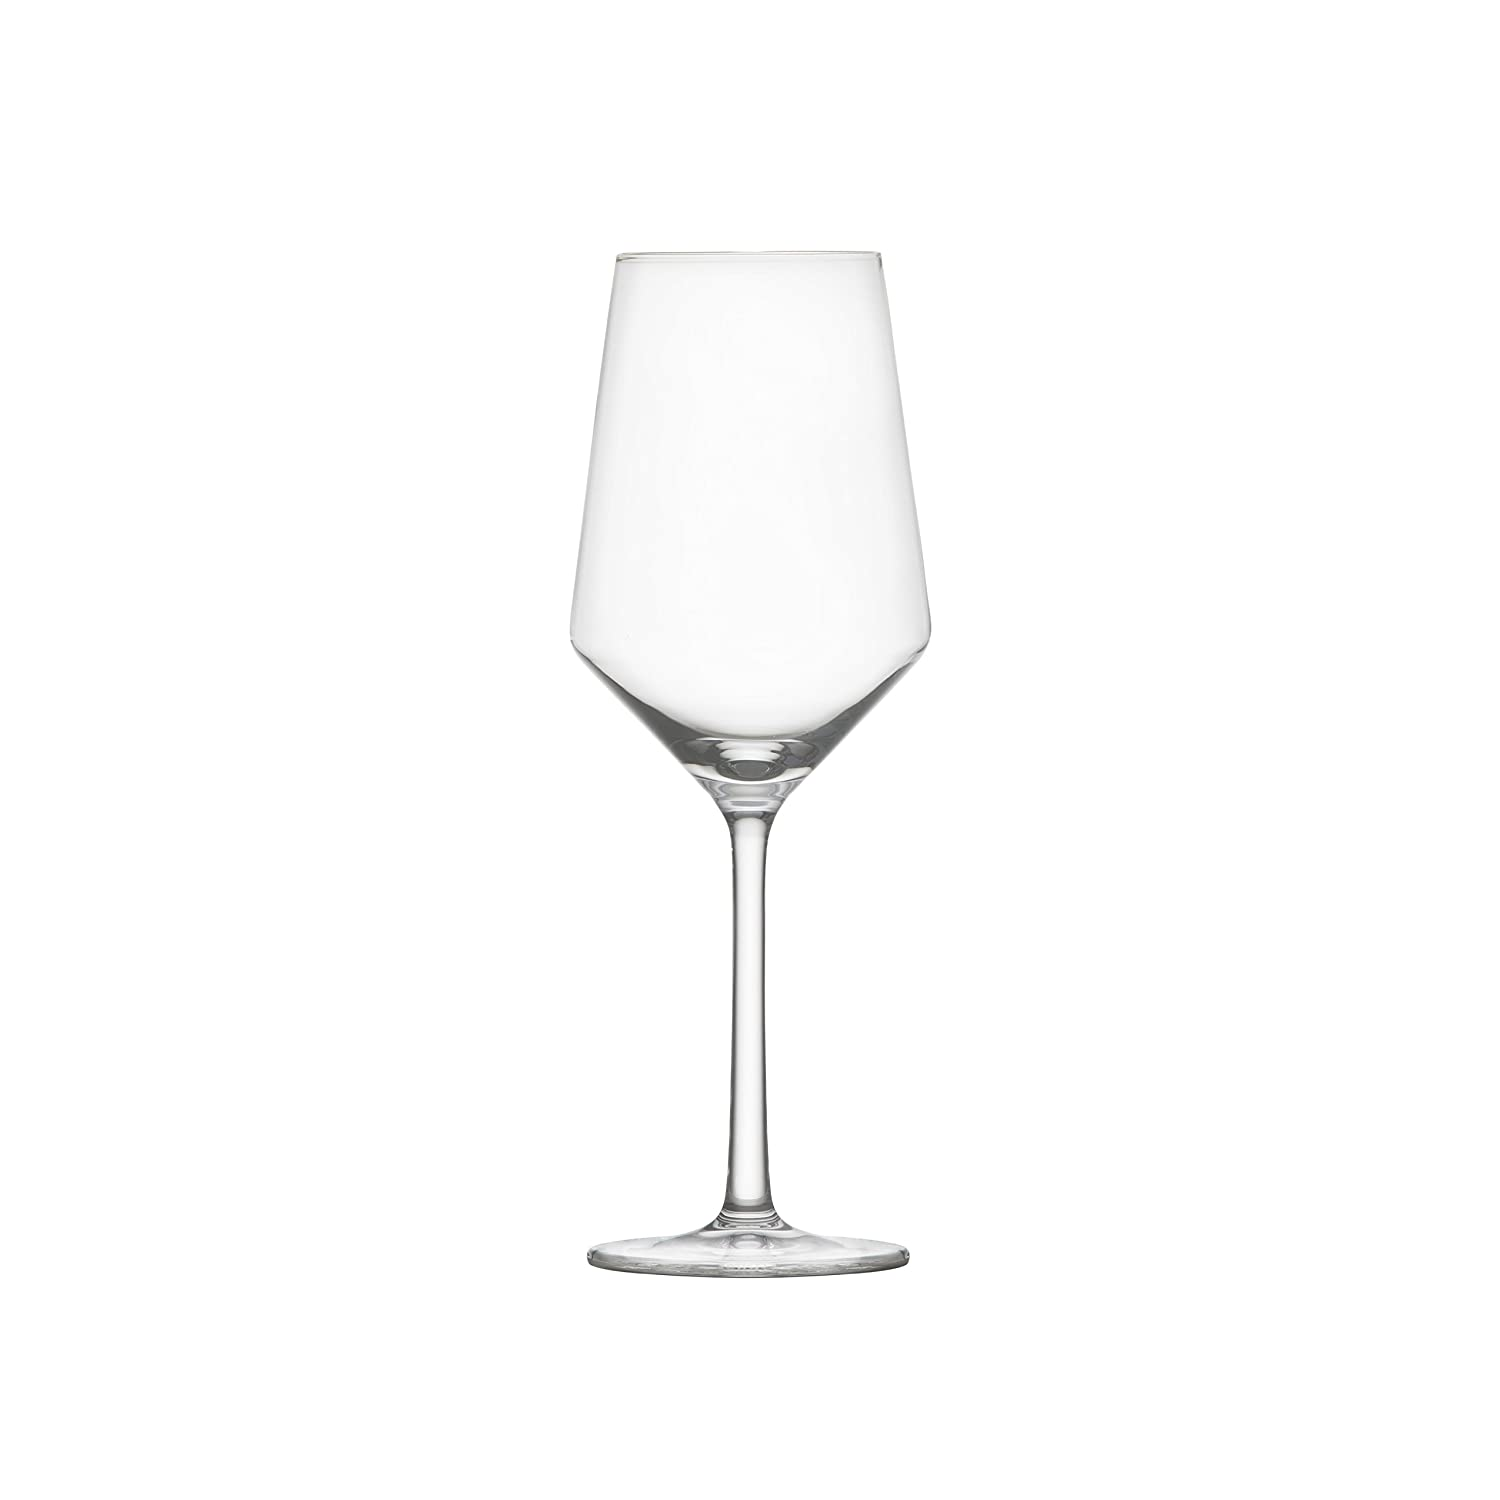 Schott Zwiesel Tritan Crystal Glass Stemware Pure Collection Bordeaux Red Wine Glass, 23-Ounce, Set of 2 0026.112942